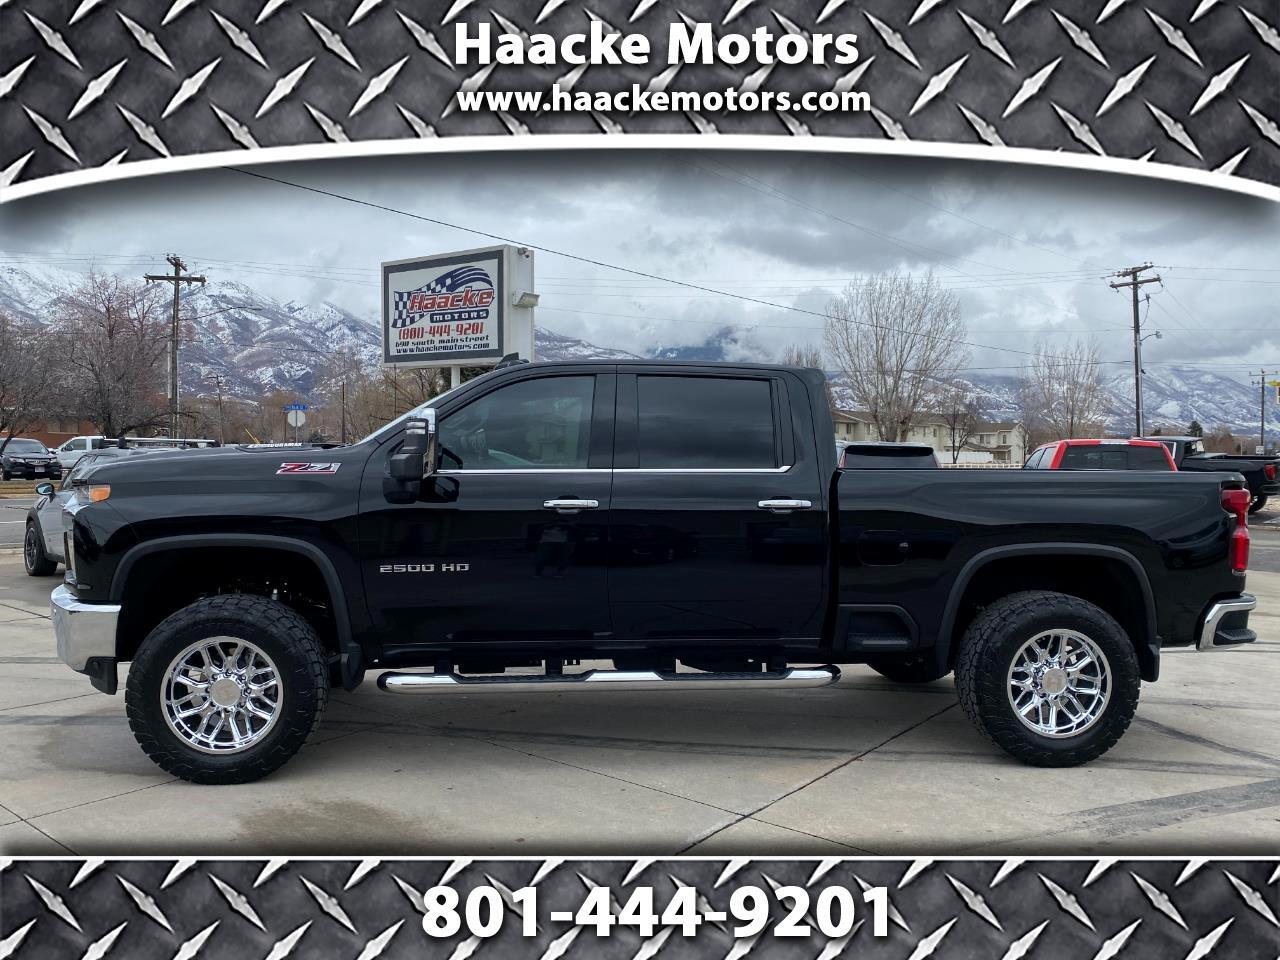 Chevrolet Silverado 2500HD LTZ Crew Cab Long Box 4WD 2020